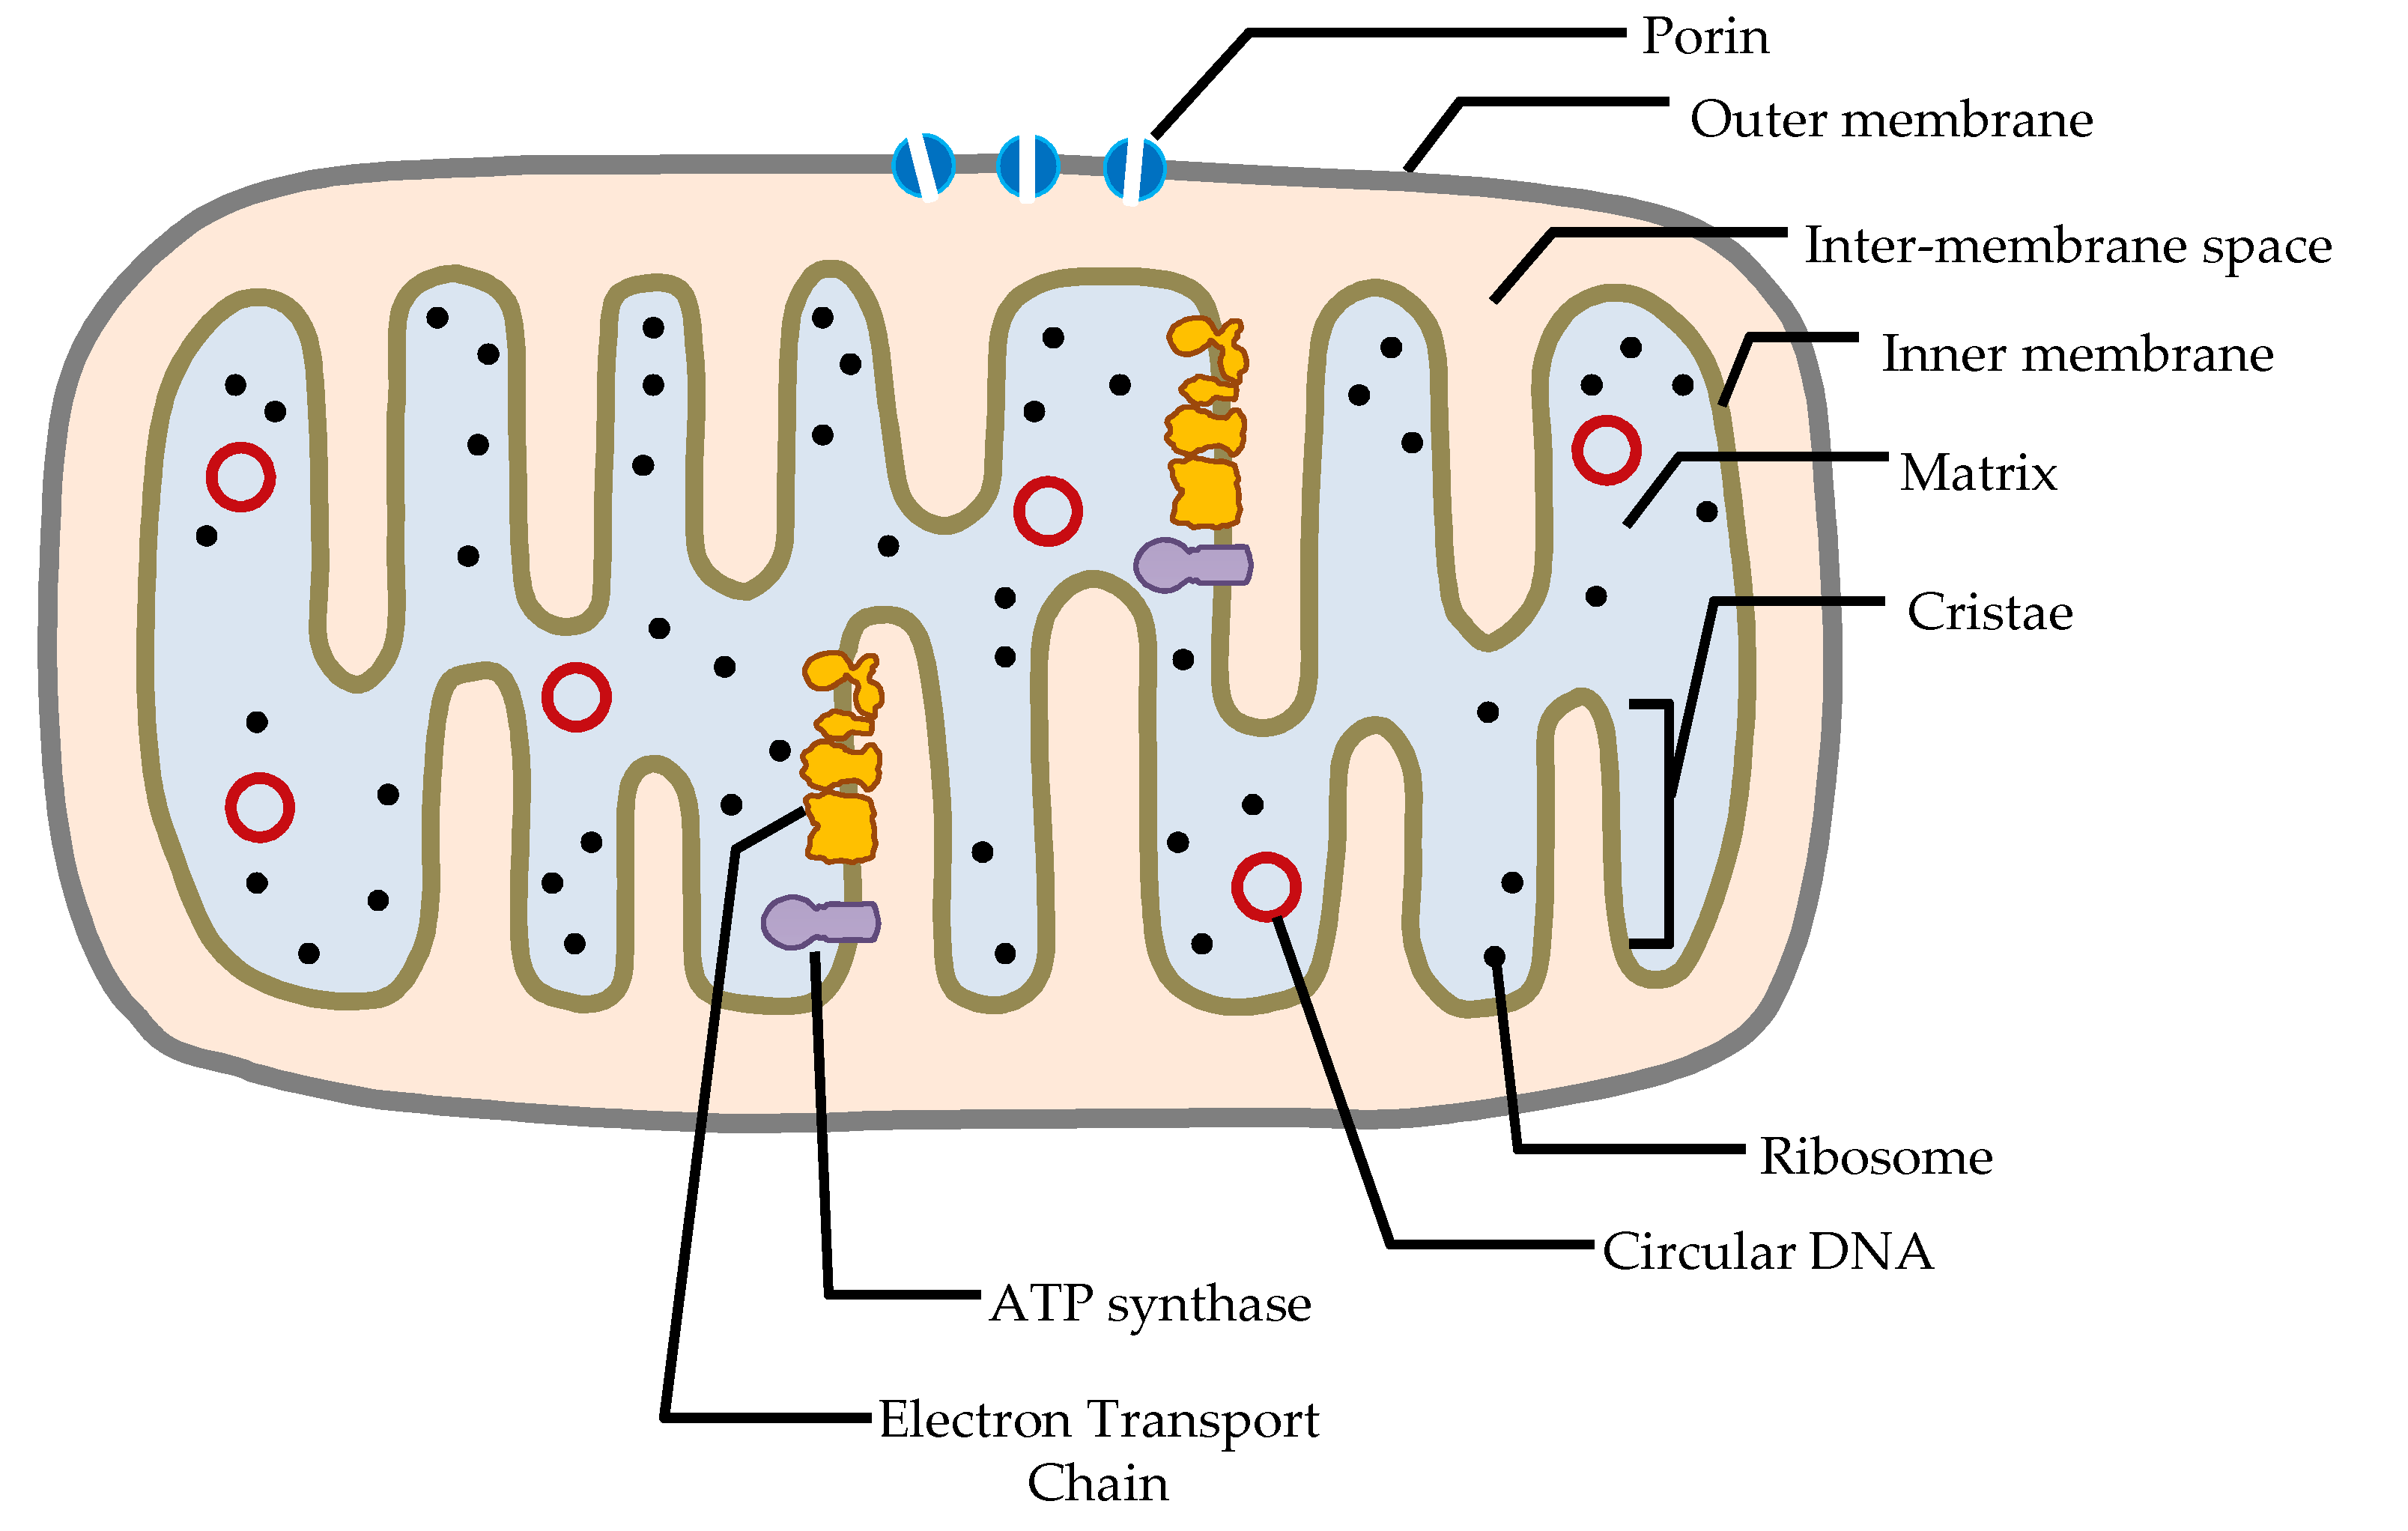 mitochondrion structure diagram rosemount 3051 pressure transmitter wiring understanding mitochondrial dna in brain tumorigenesis intechopen figure 1 the of a